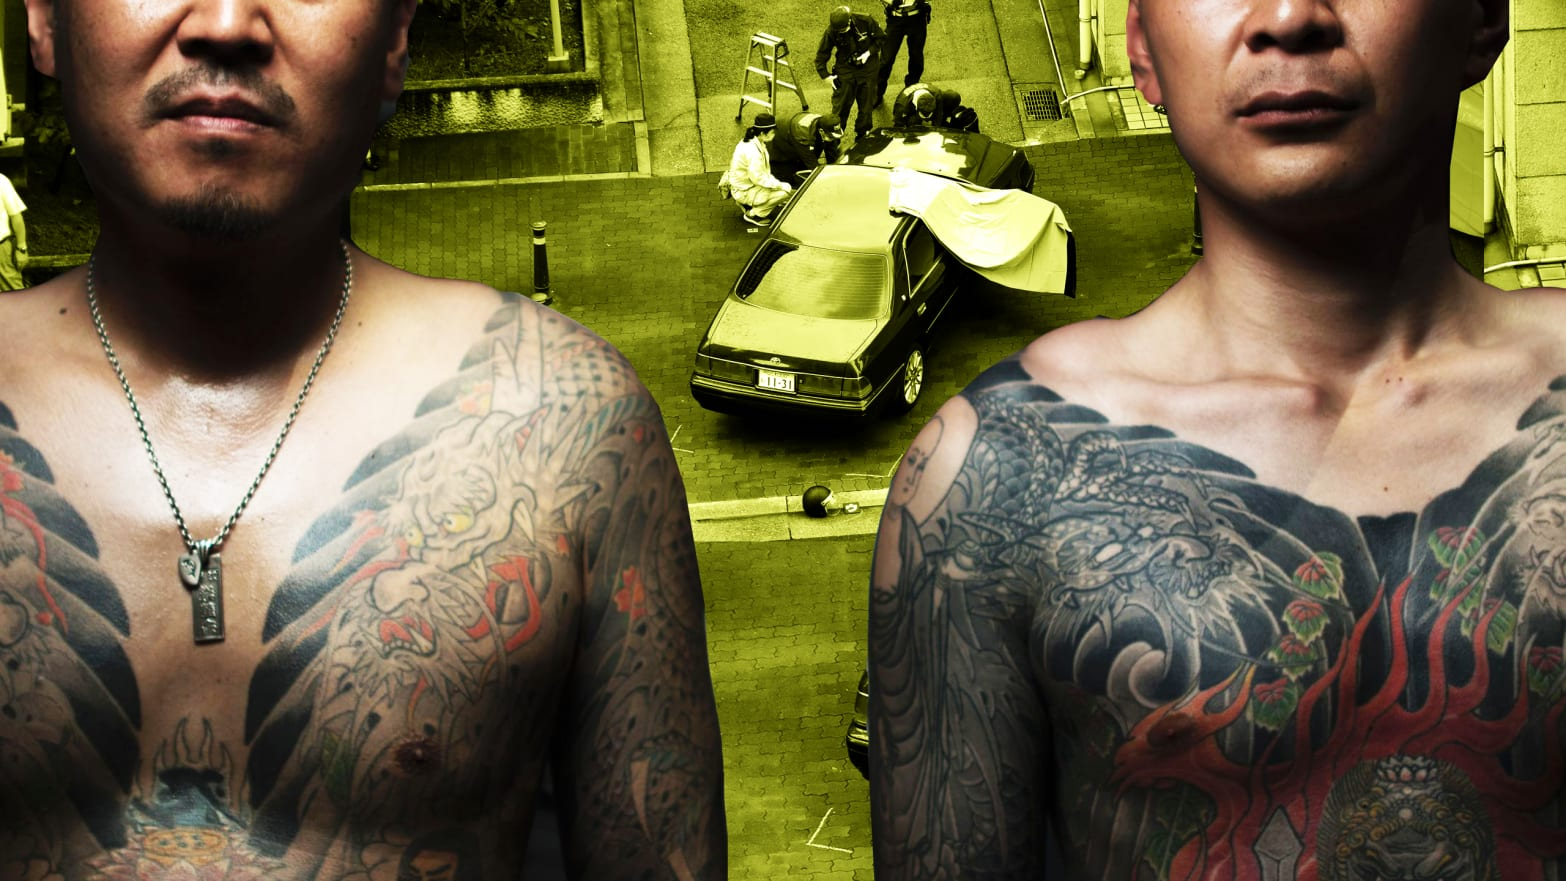 The New Yakuza Murders: Inside the Japanese Mafia's Circle of Death